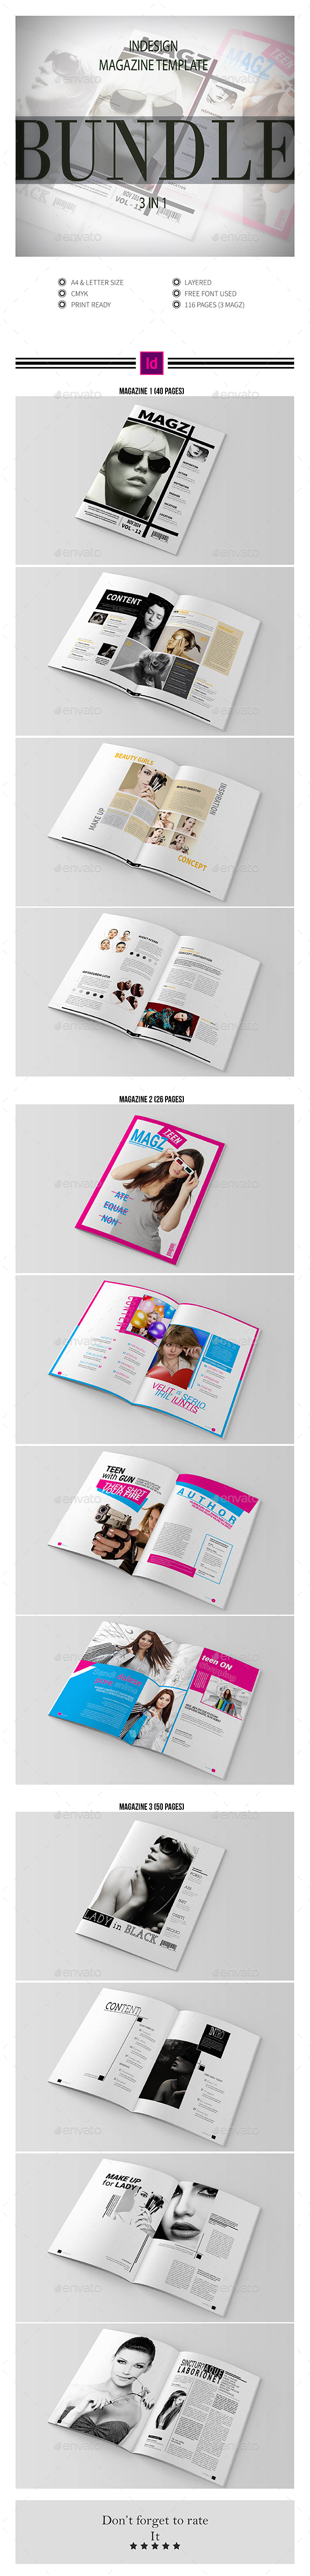 Multipurpose InDesign Magazine Template Bundle - Magazines Print Templates